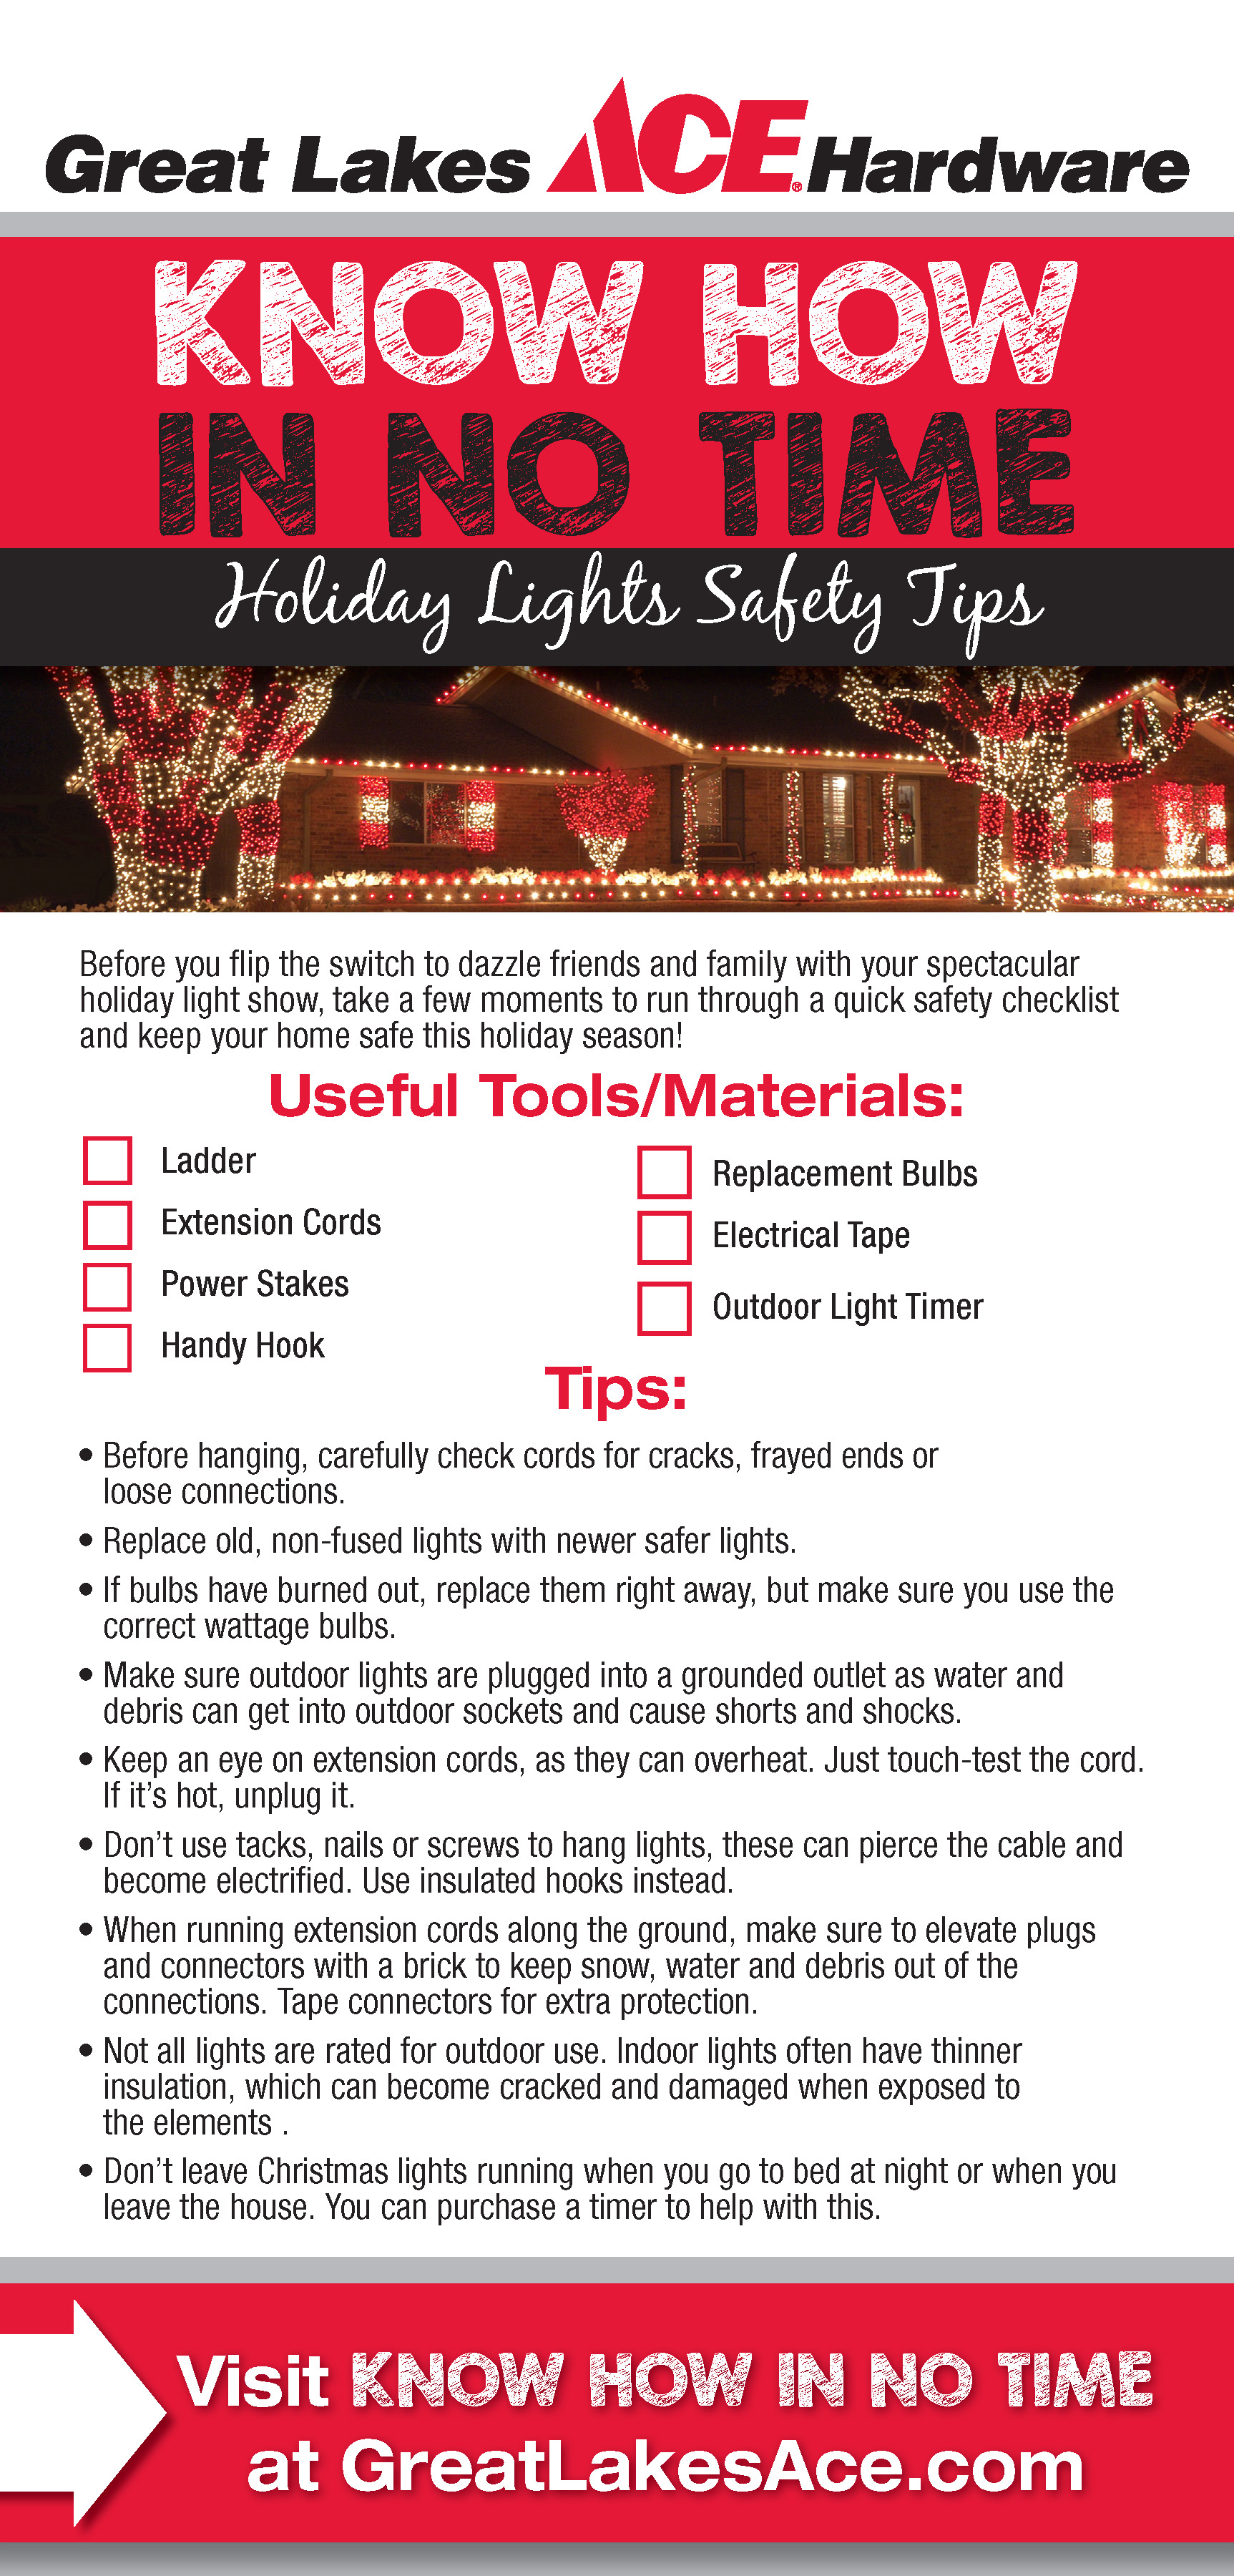 Holiday Lights Safety Tips